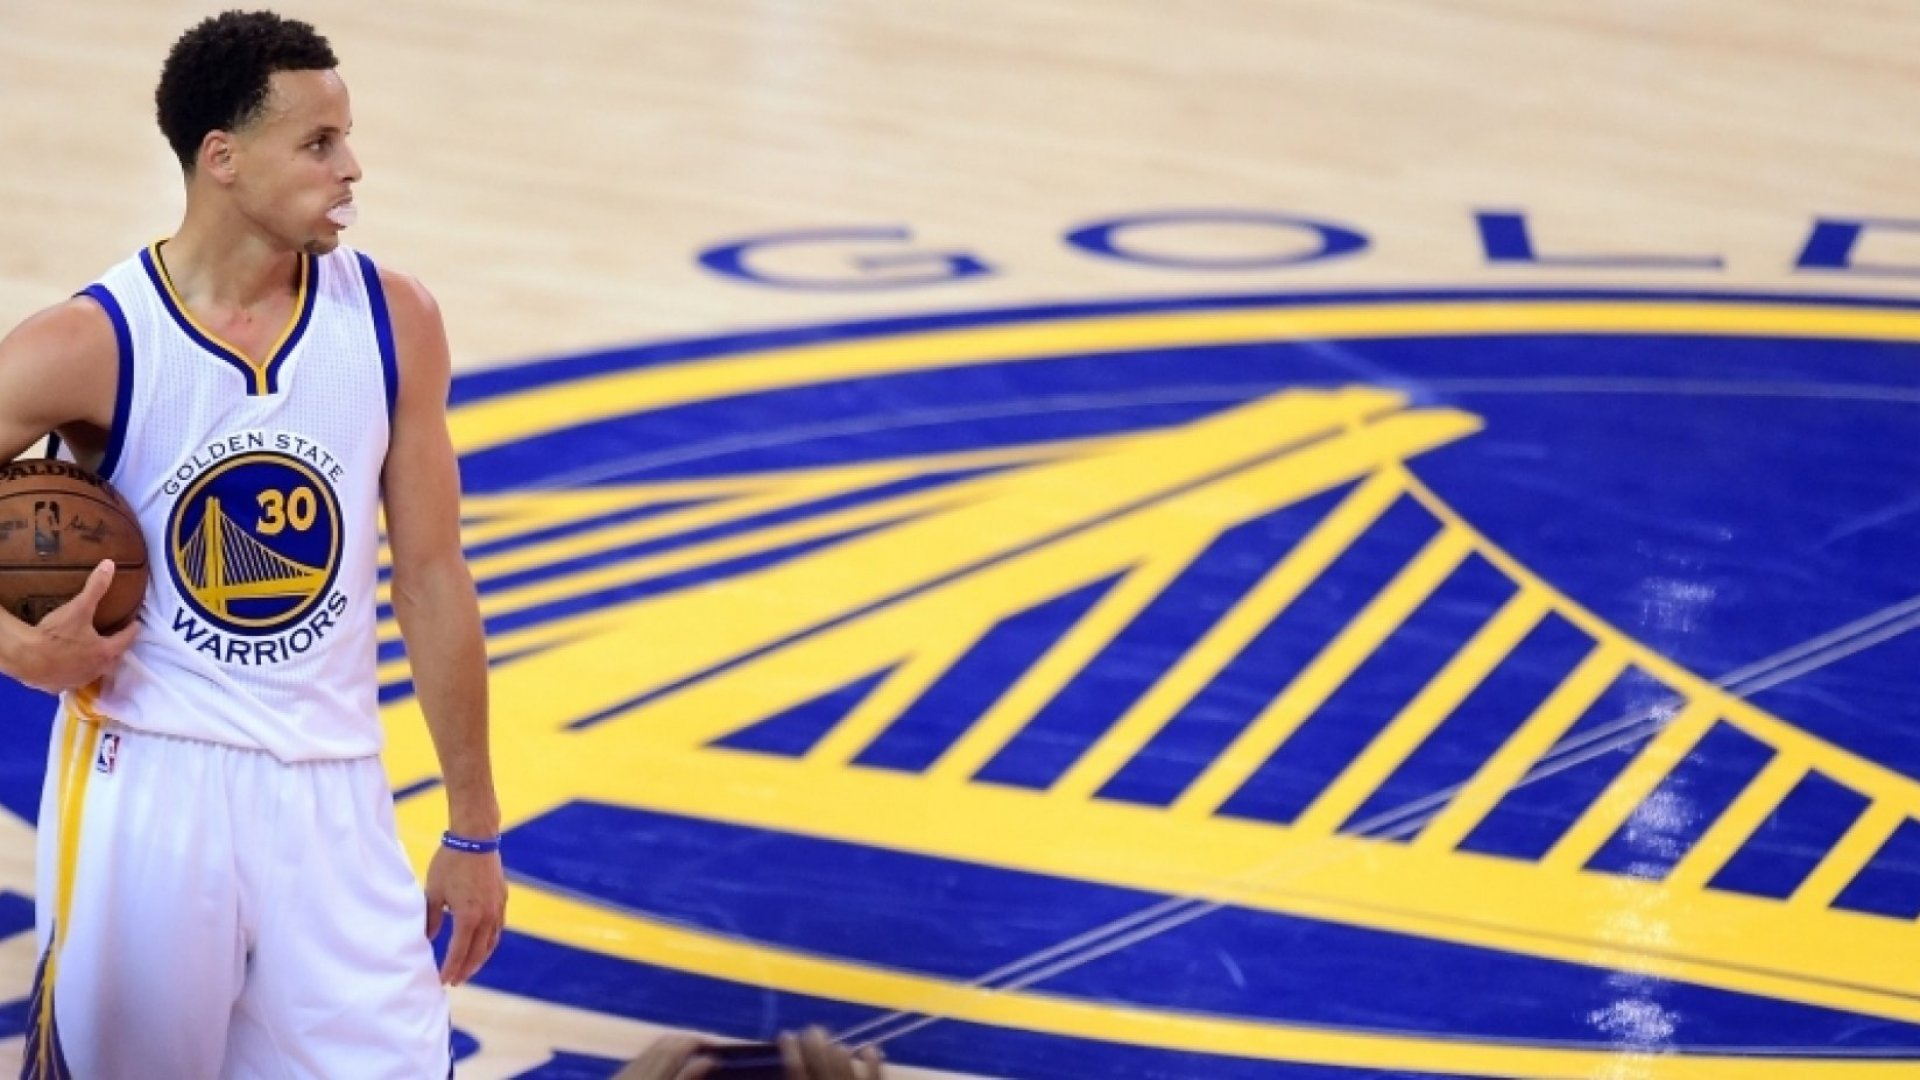 6 Ways to Channel the Confidence of the Golden State Warriors' Stephen Curry